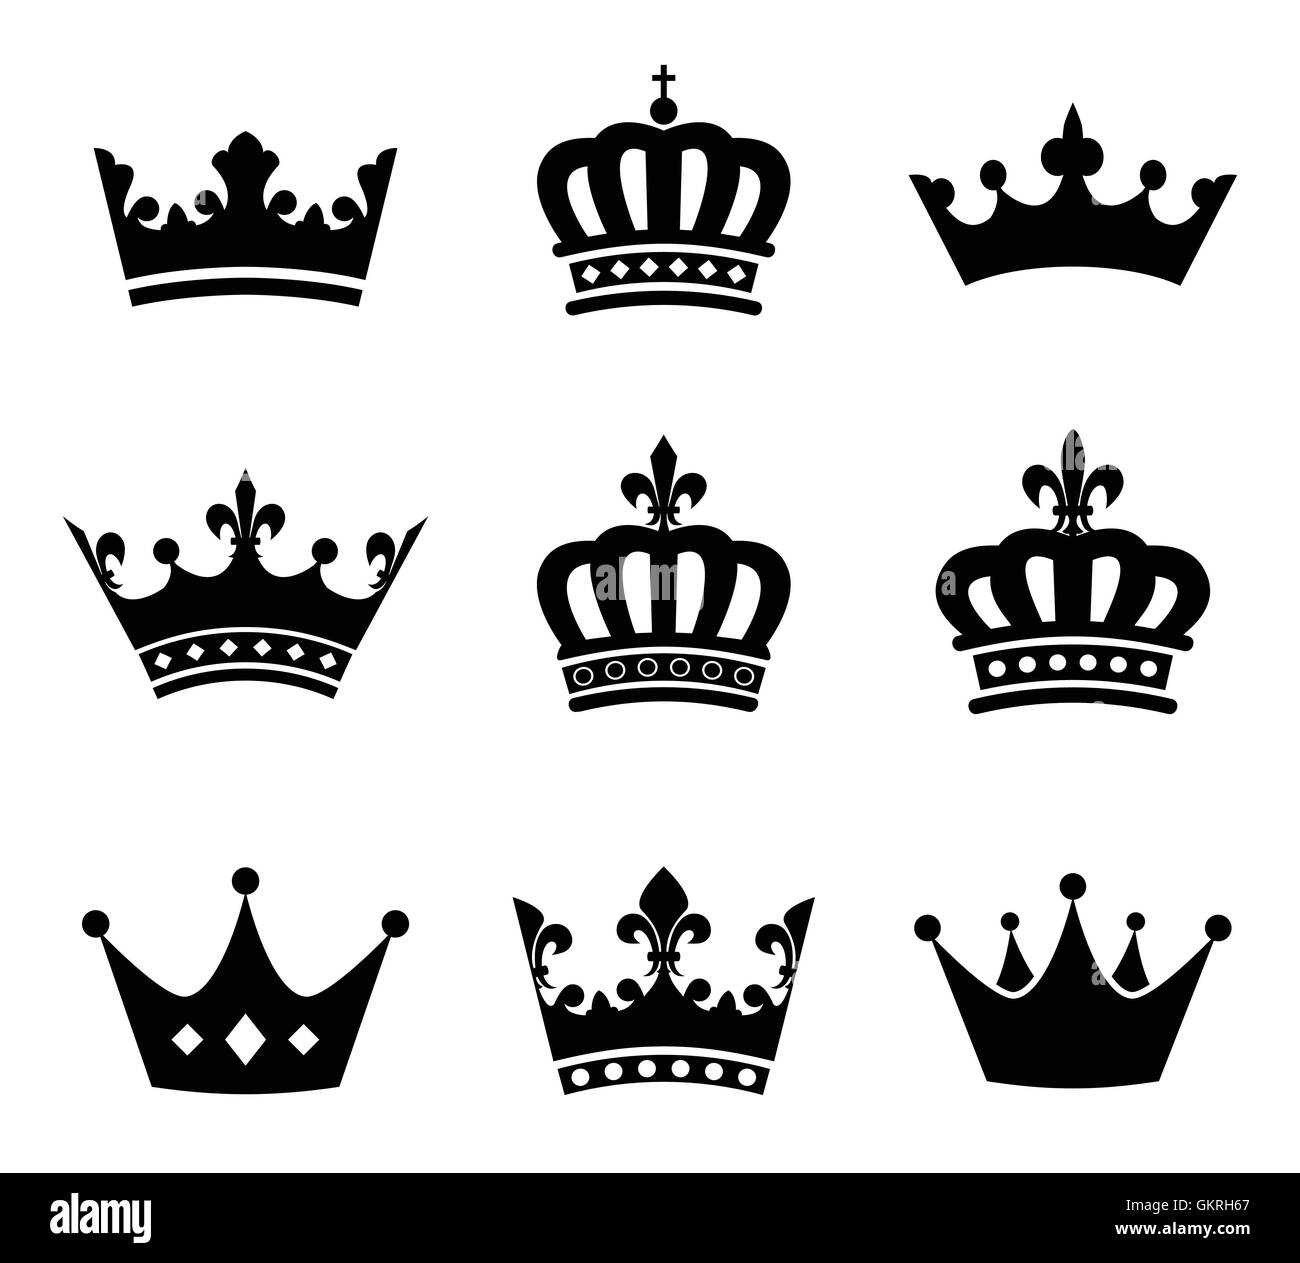 Queen Sign Emperor King Icon Princess Pictogram Symbol Pictograph